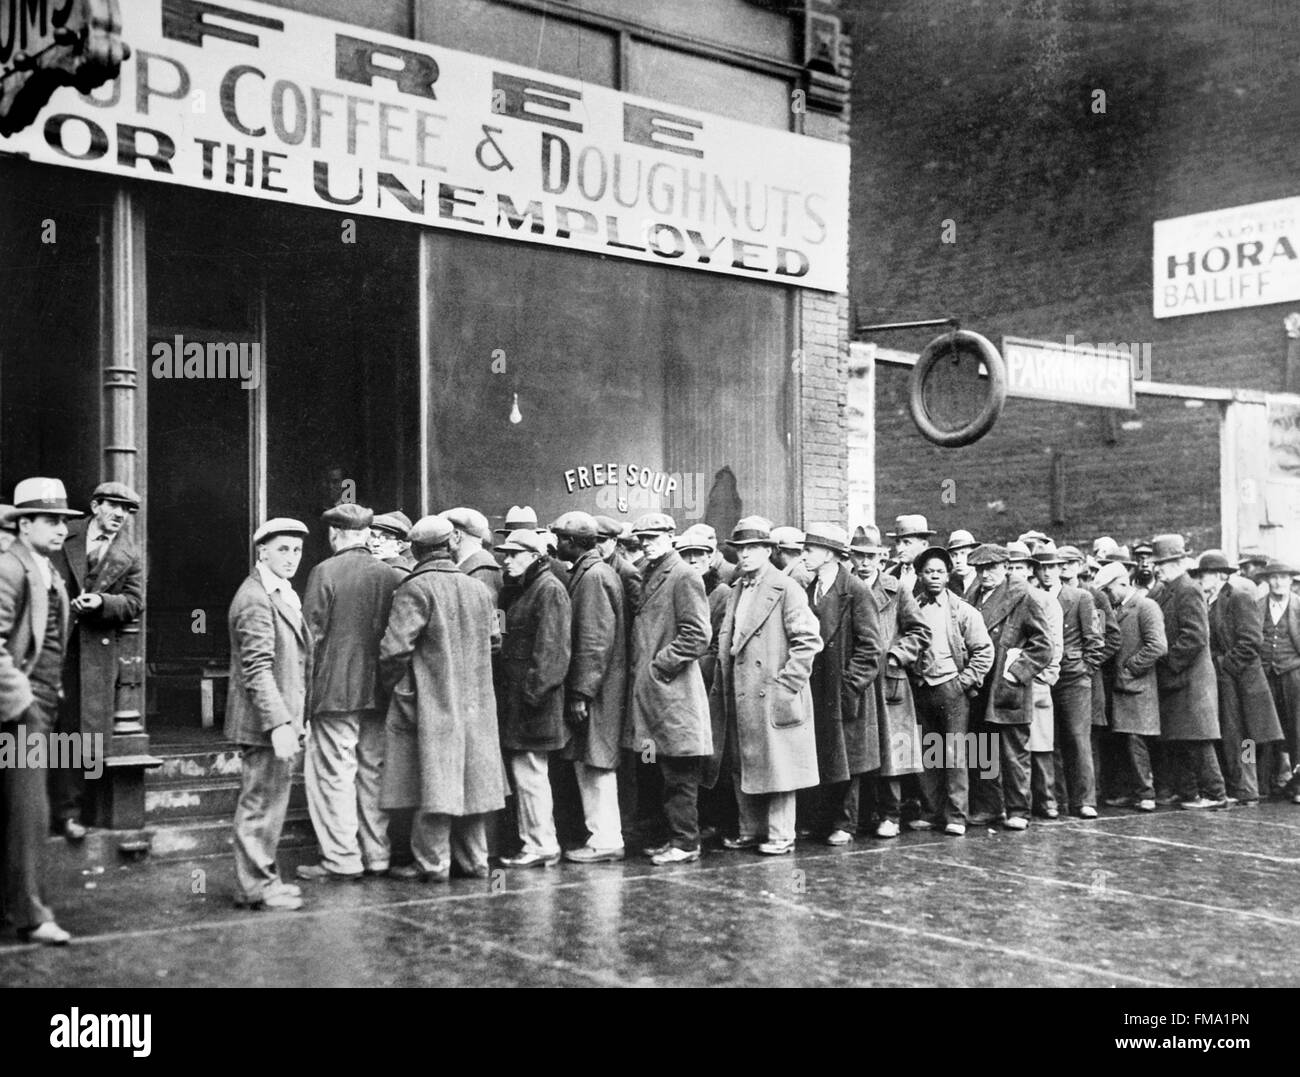 Soup Kitchens Bread Lines During Great Depression